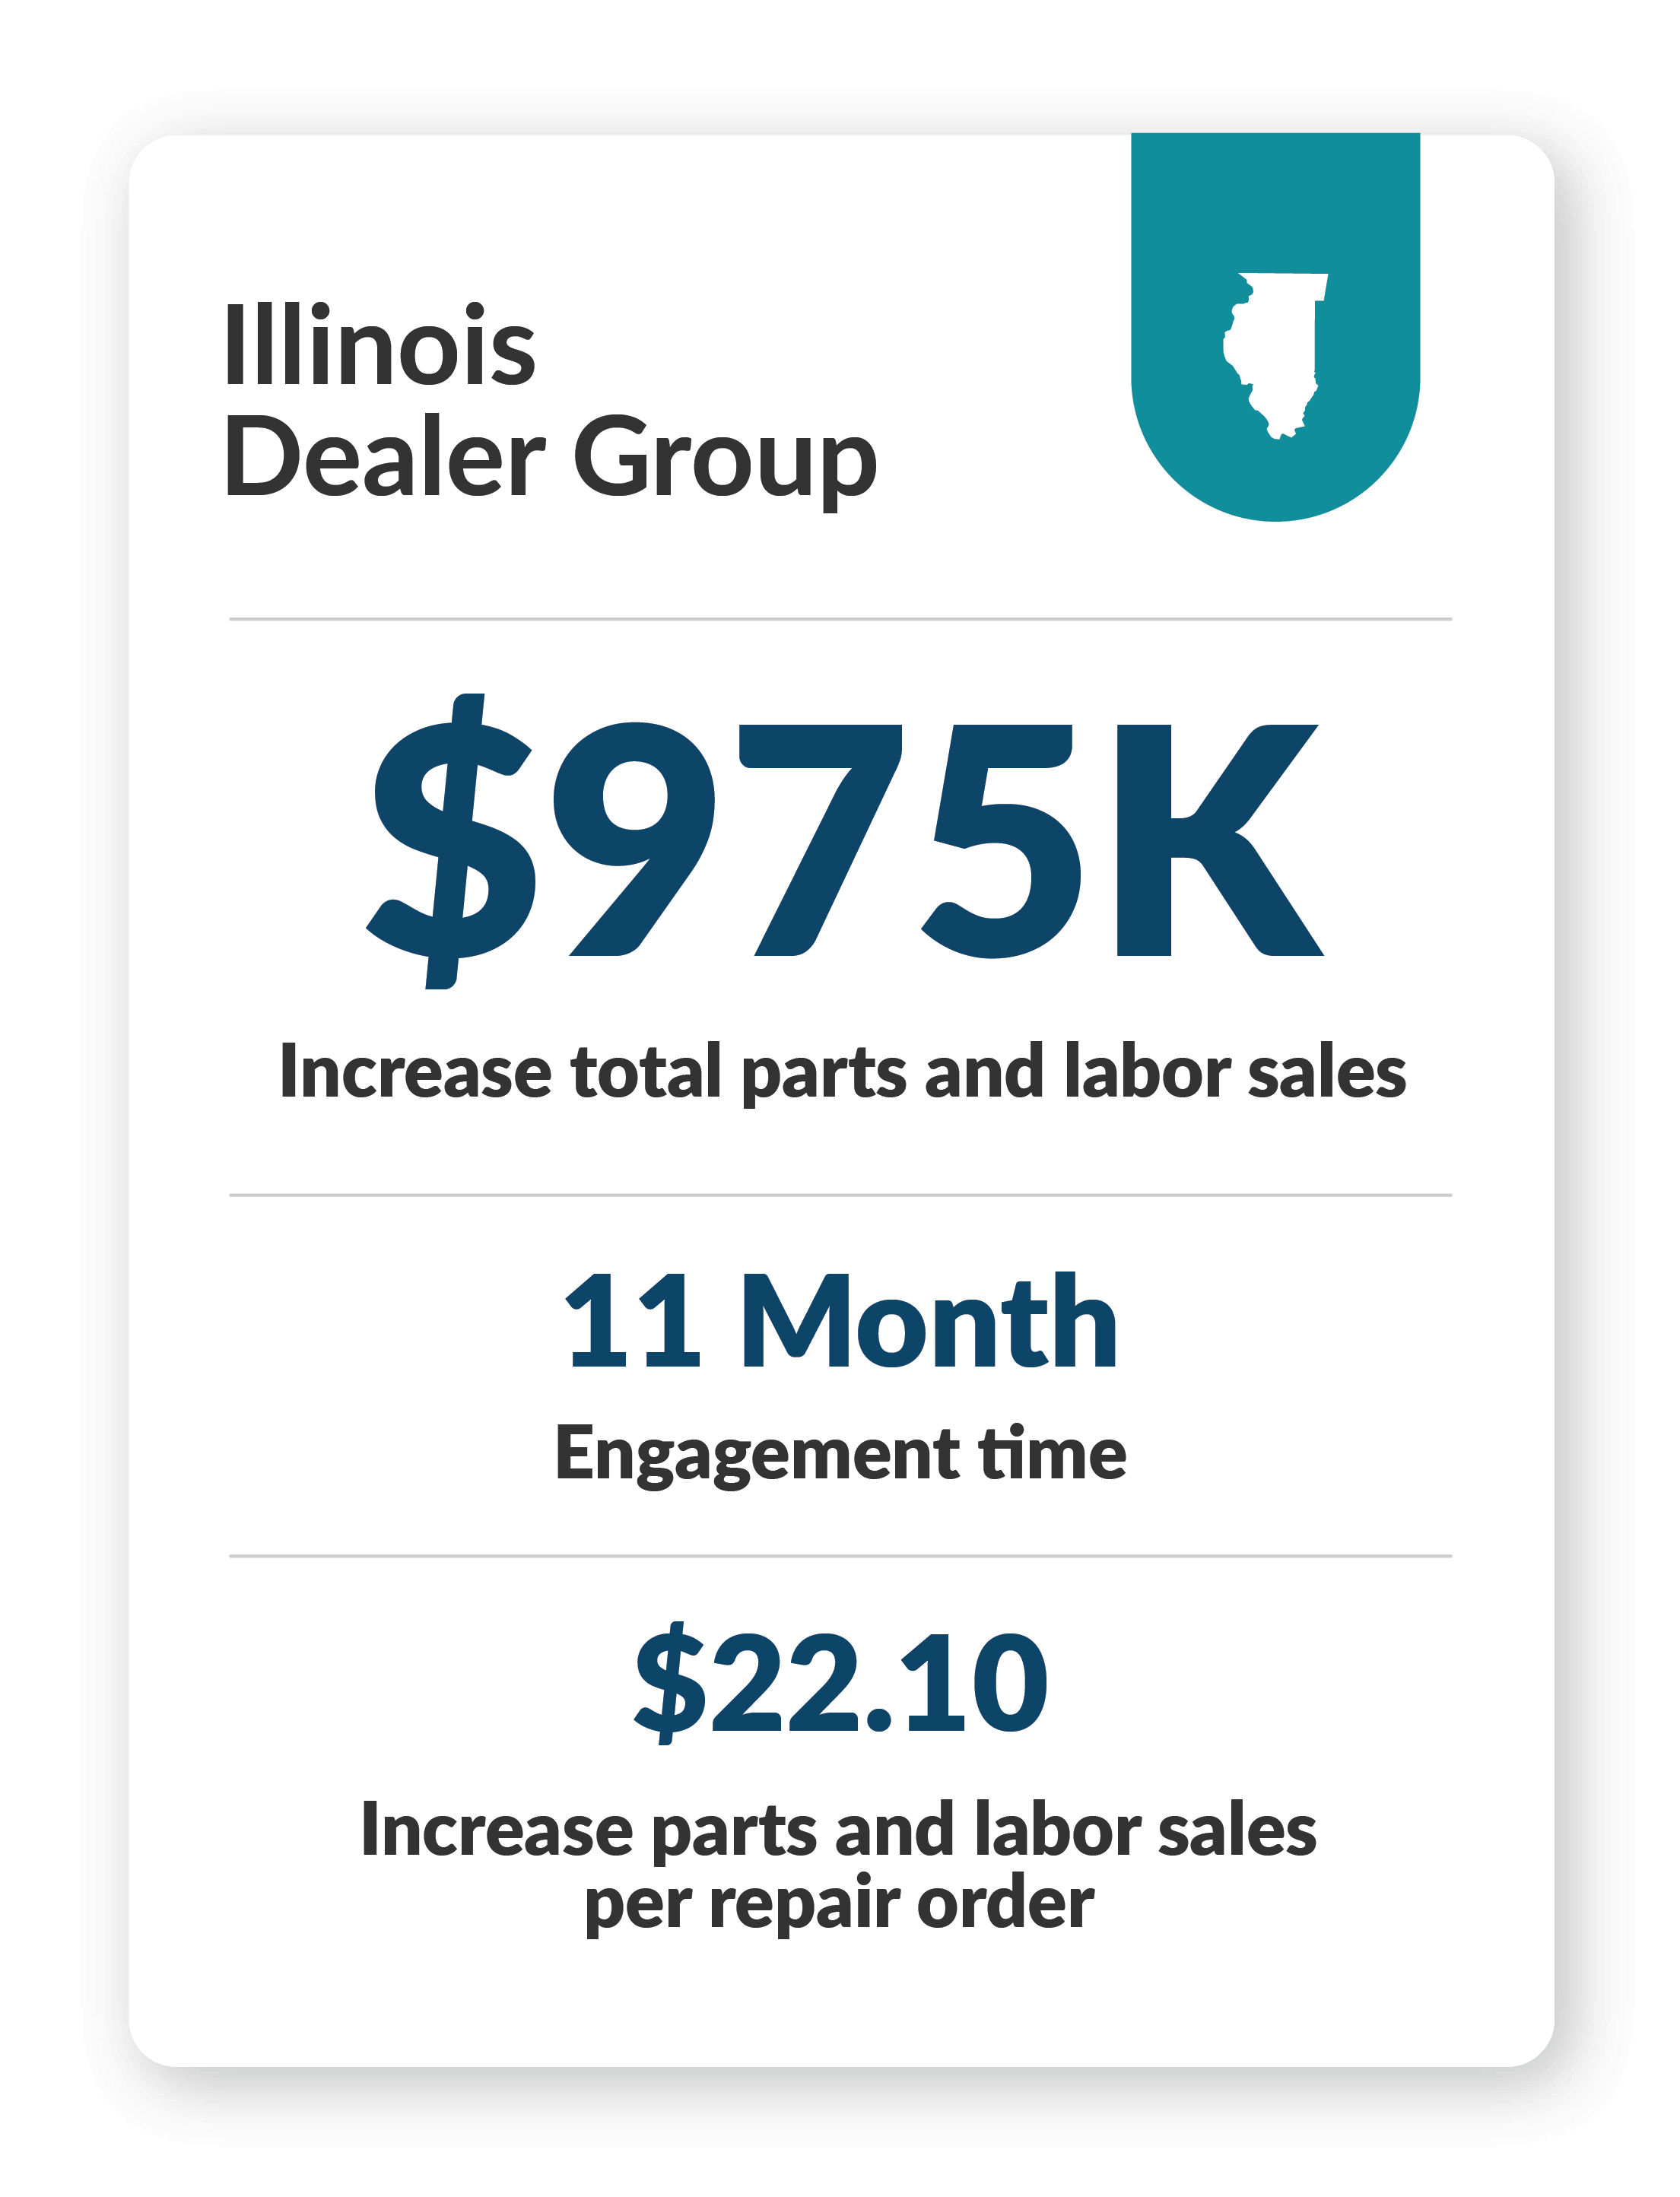 6 Store Group in Illinois - $975k increase total parts and labor sales